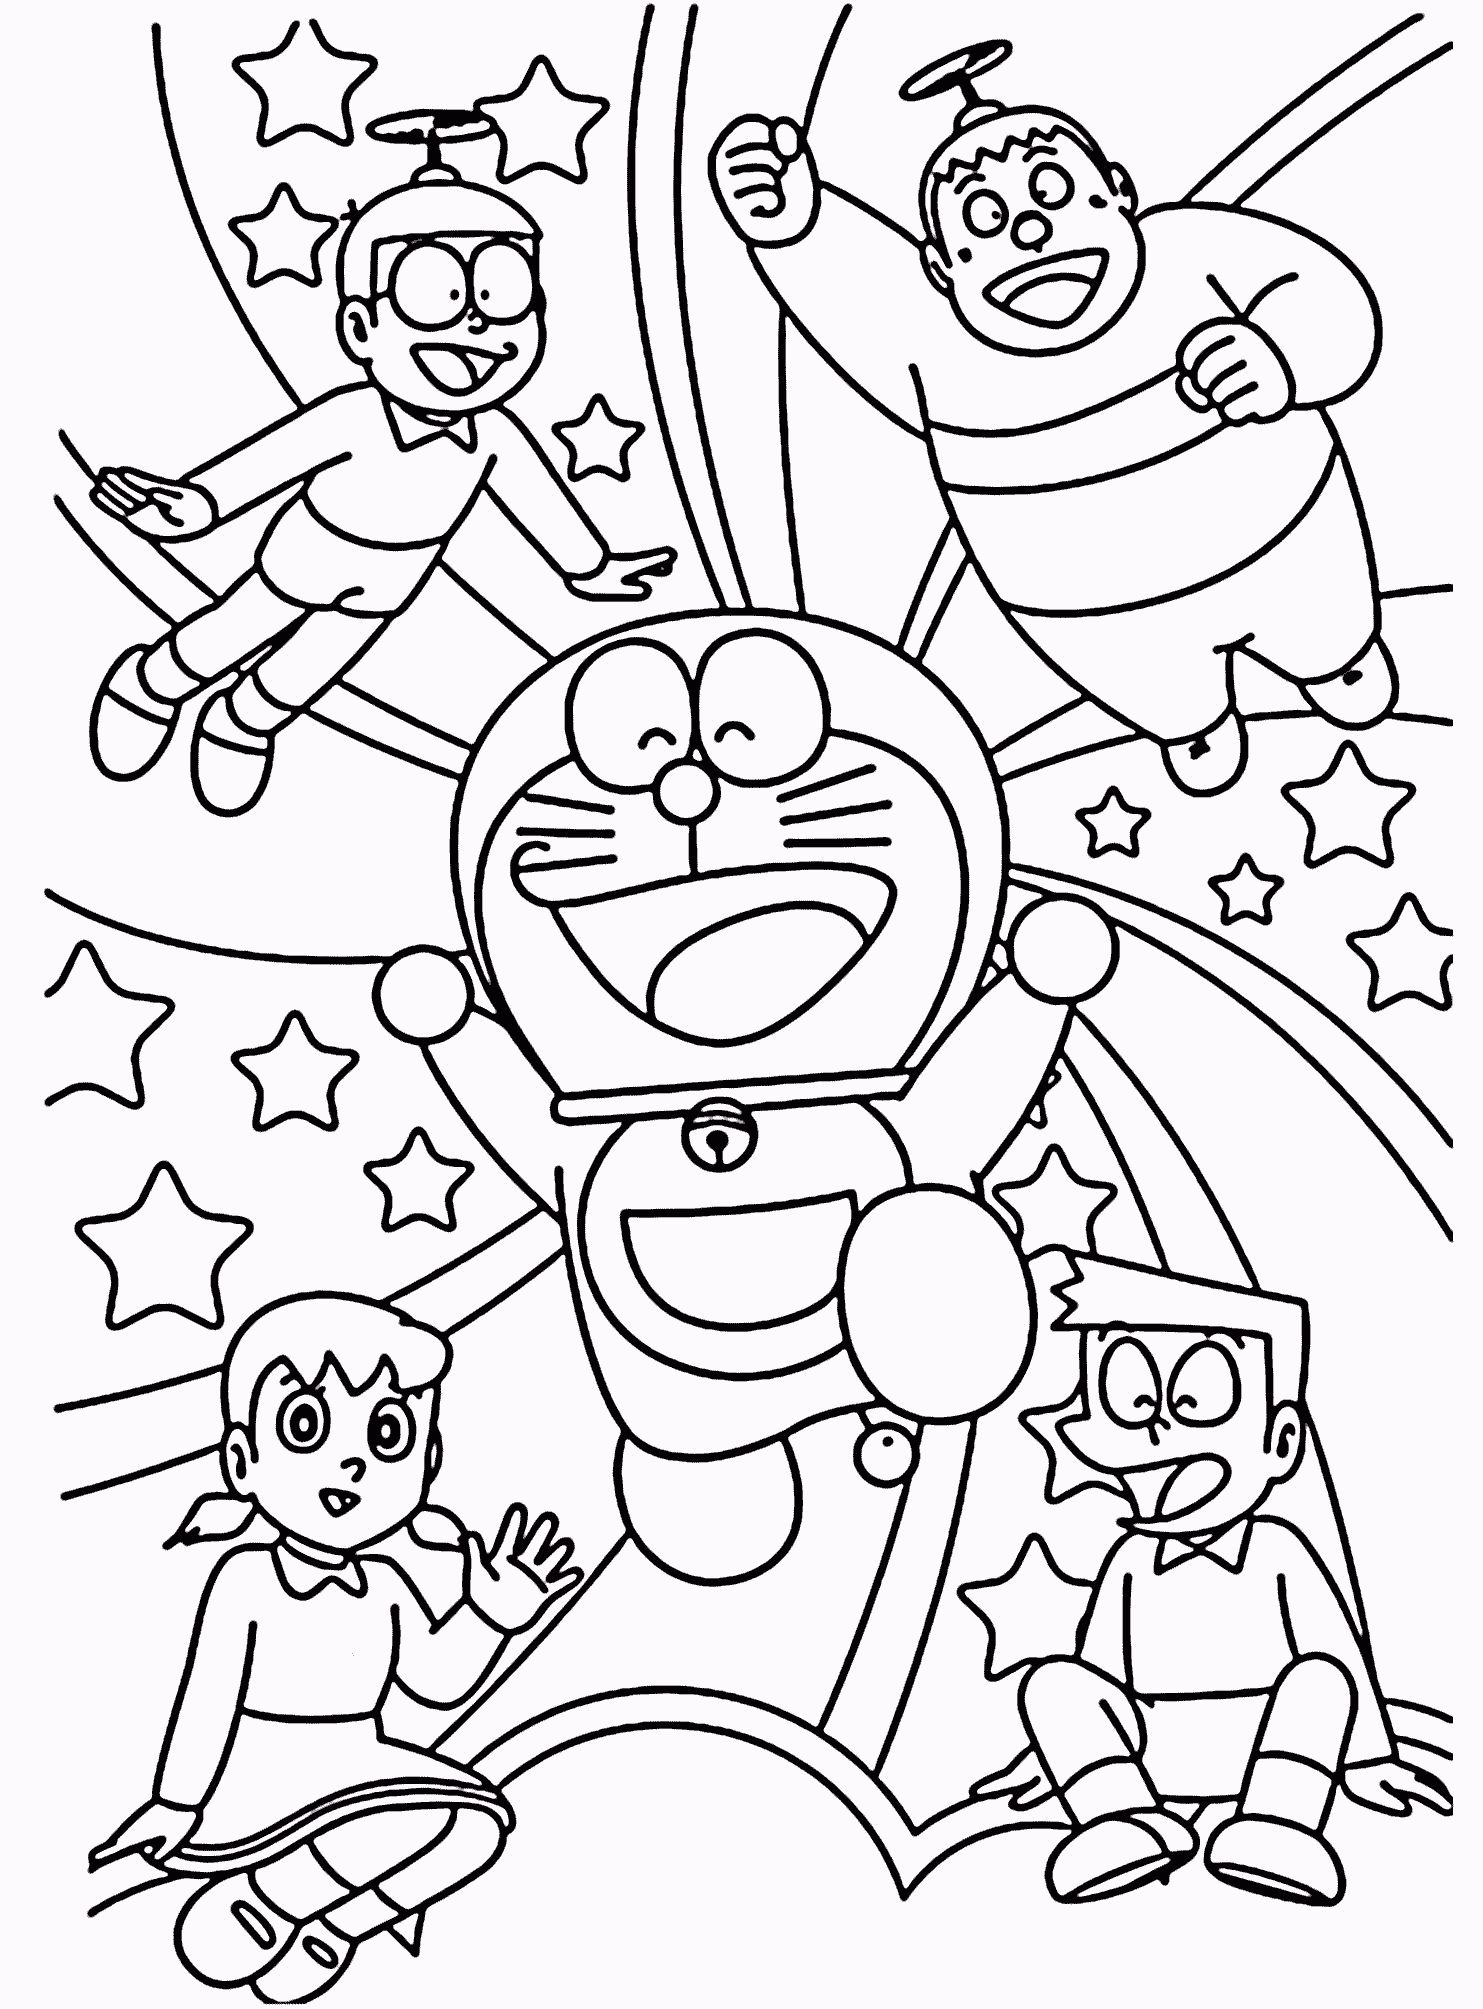 Cartoon Coloring Book Pdf Download New Coloring Pages Princess Palace Pets Col Tangled Coloring Pages Disney Princess Coloring Pages Free Disney Coloring Pages